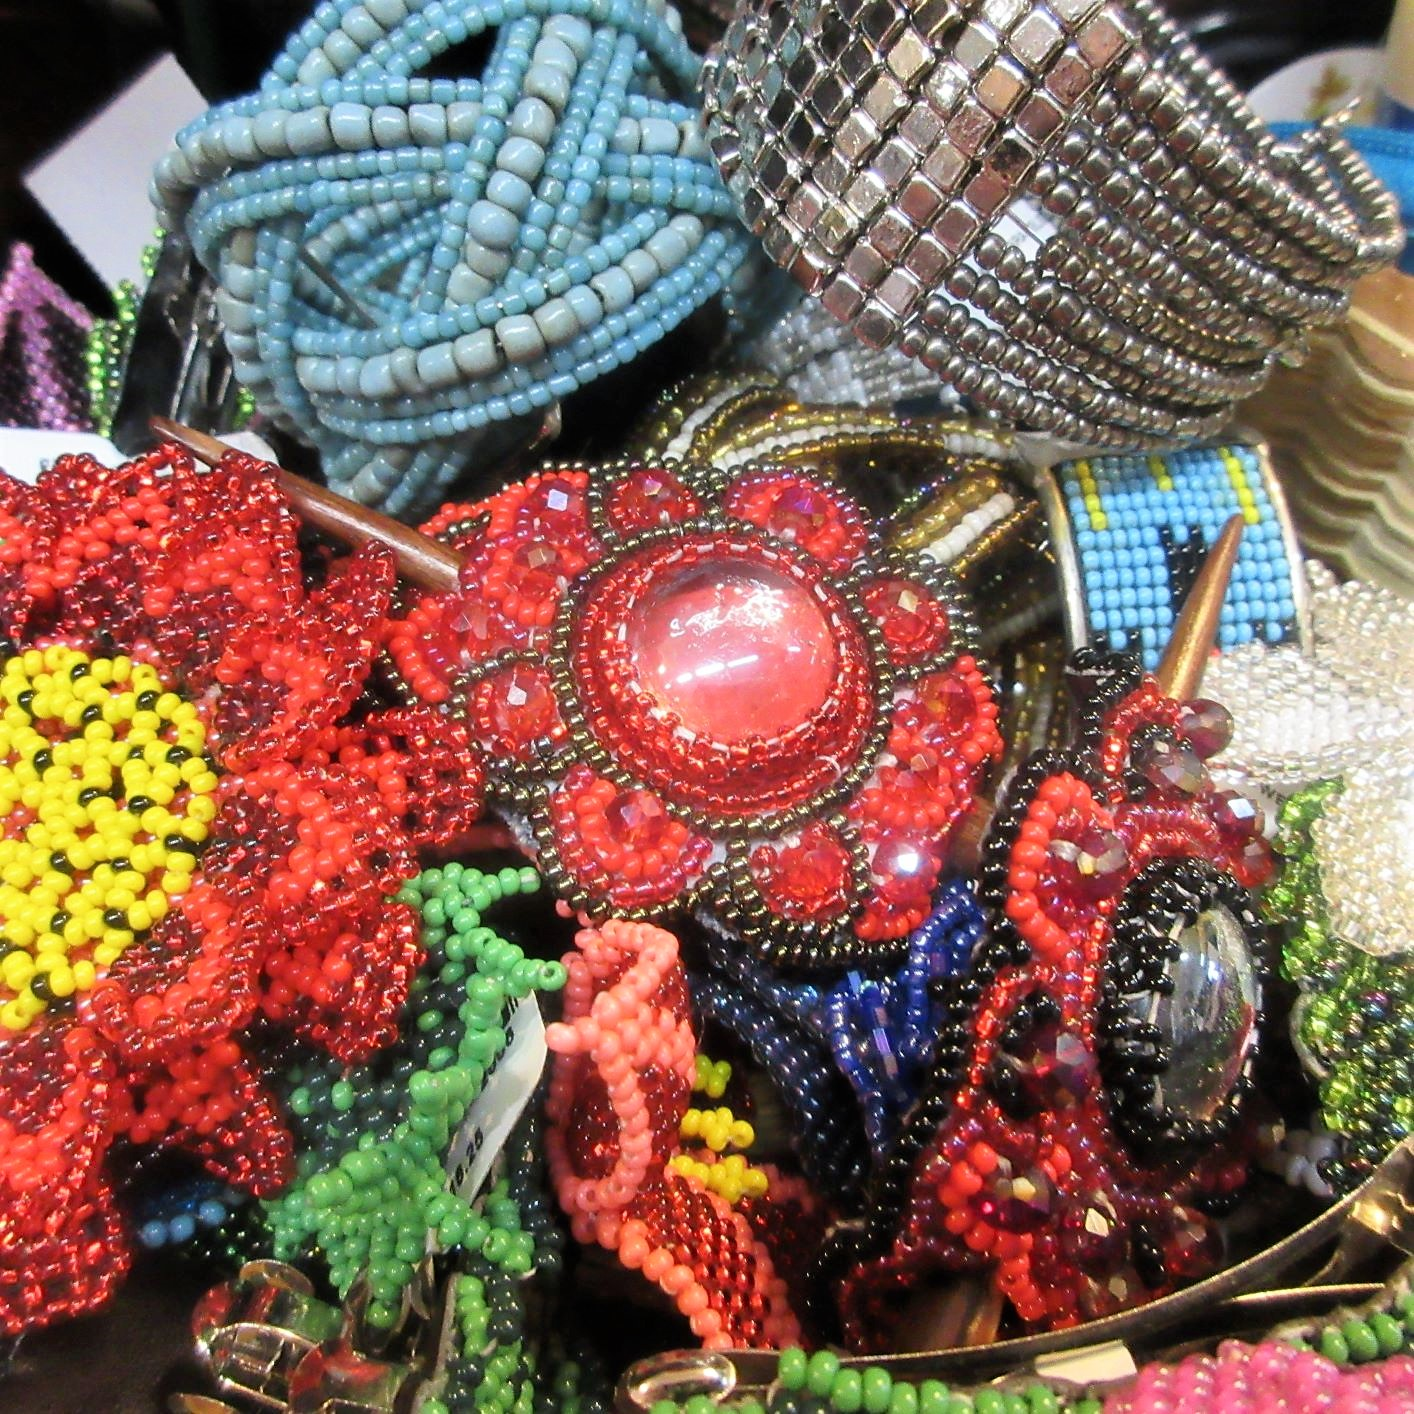 Hair Jewelry - If the words hair jewelry excite you, come and see our beautiful barrettes and hair sticks.